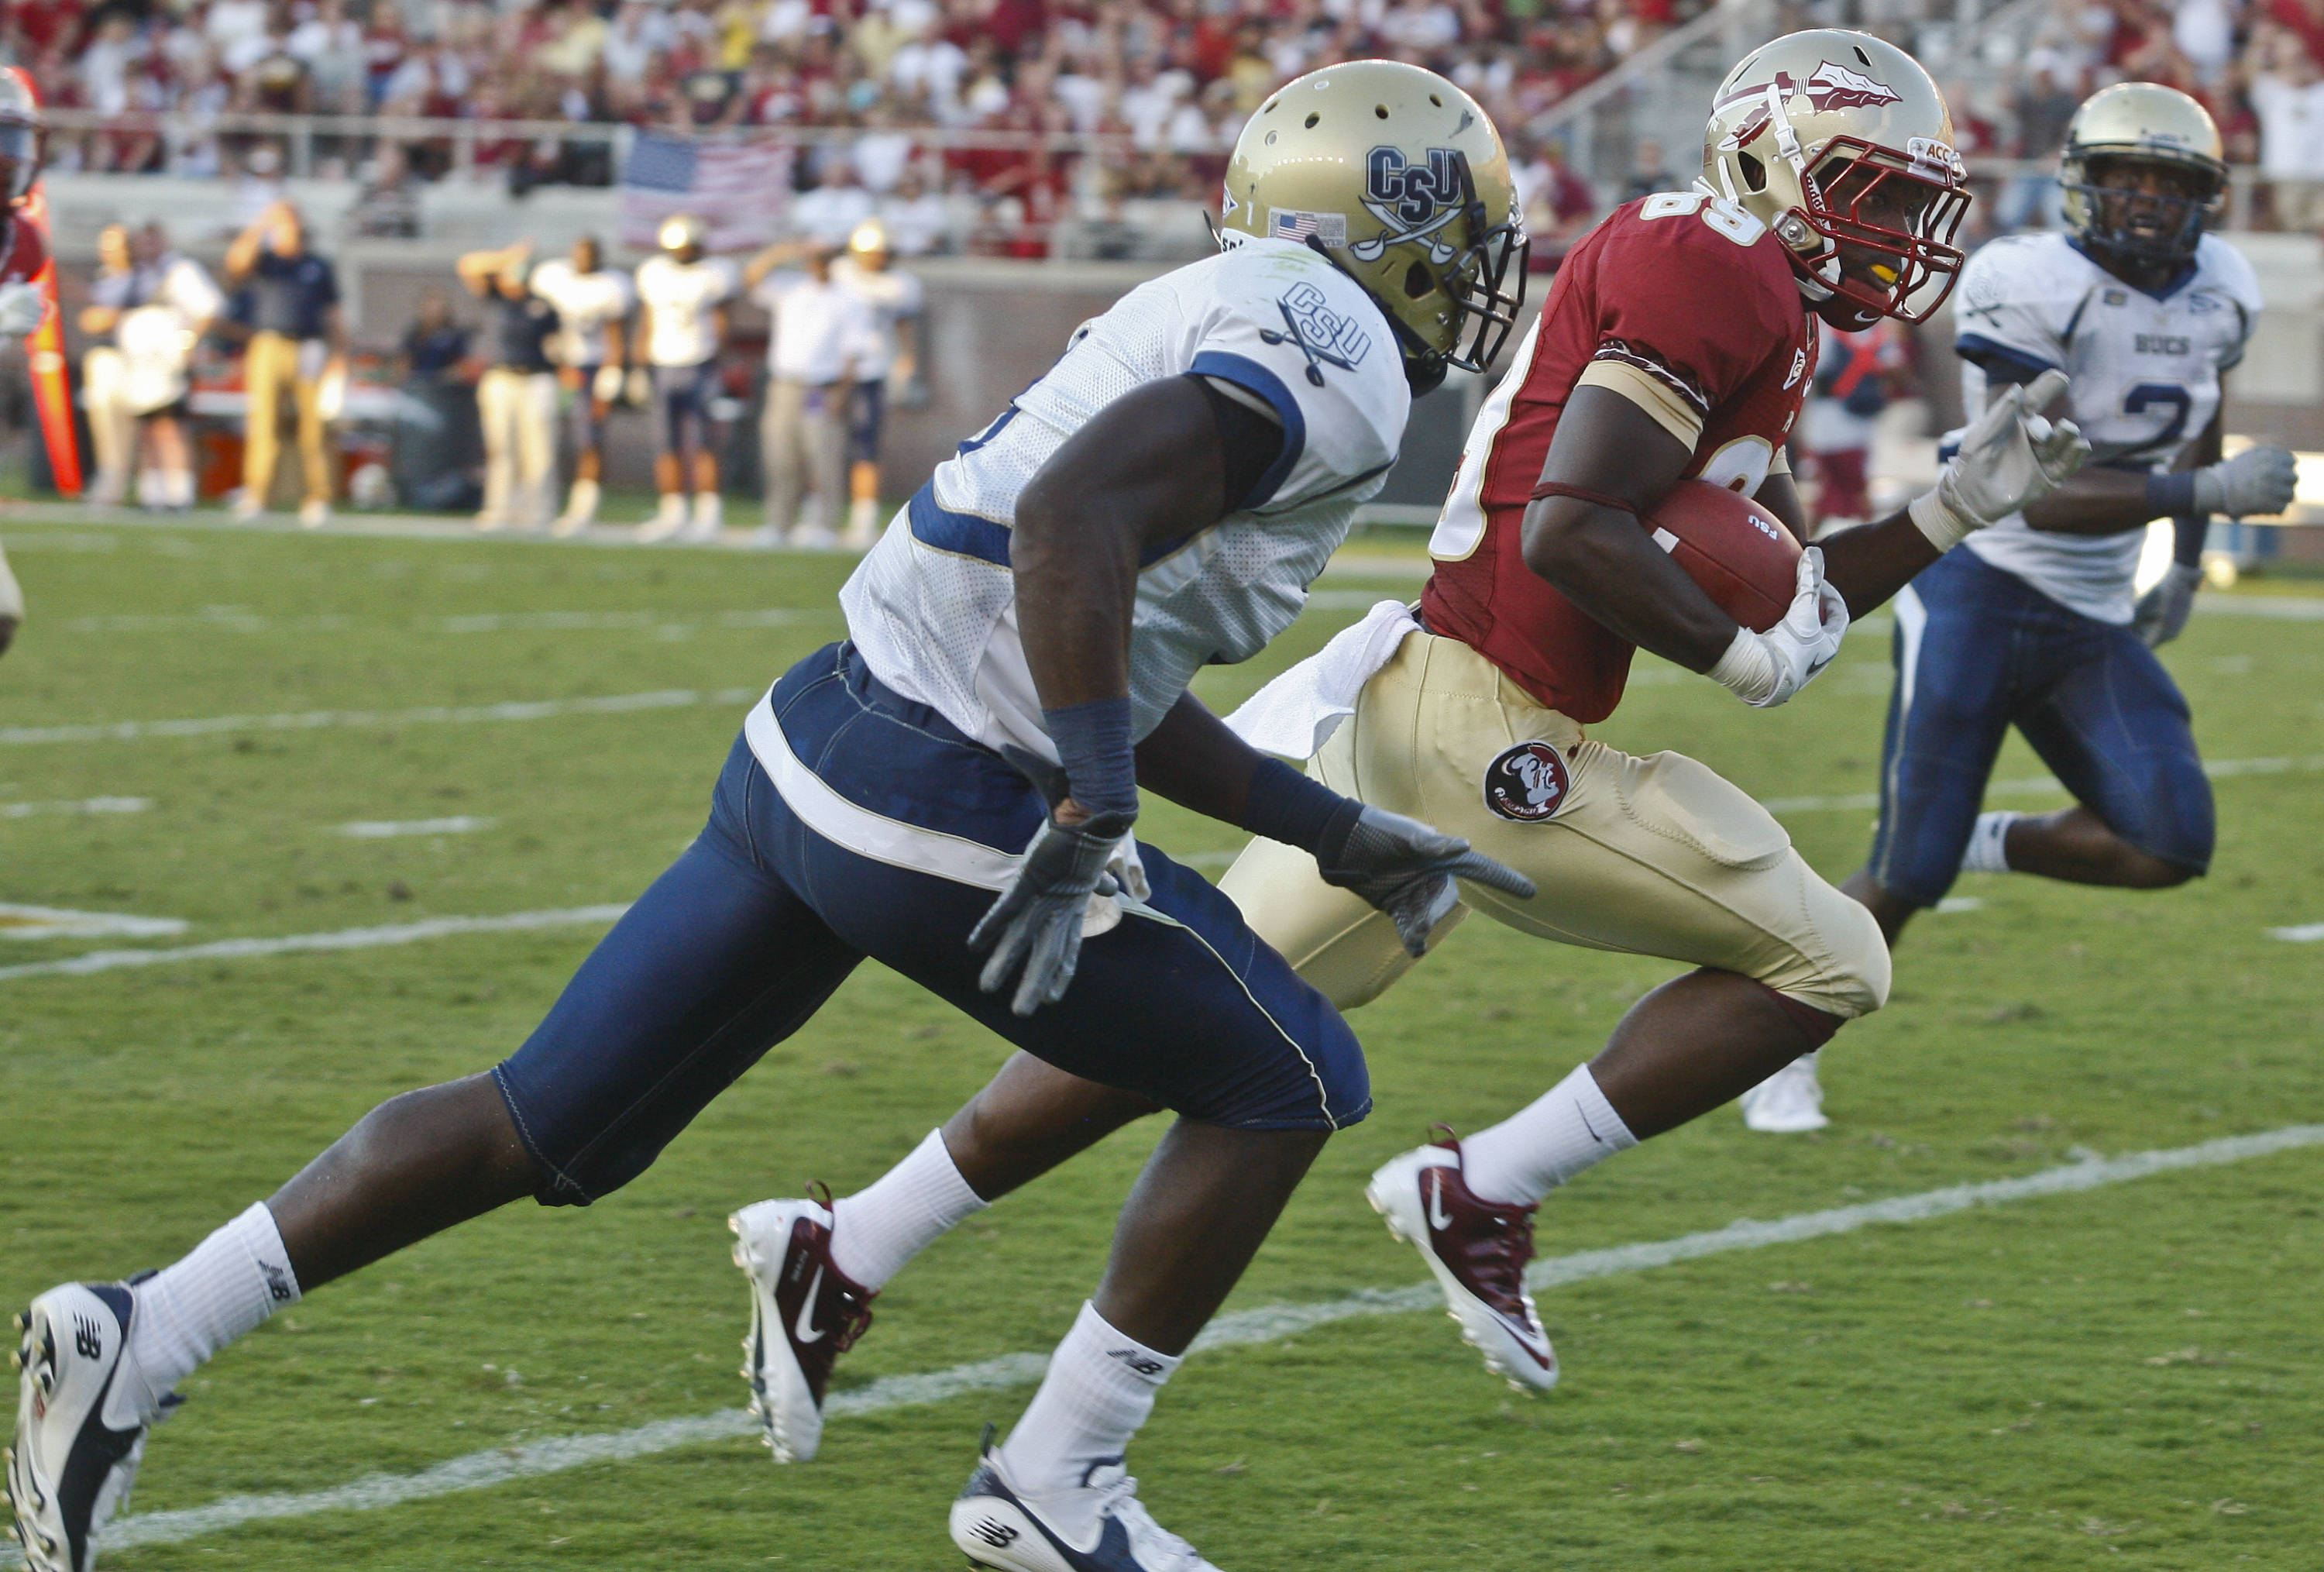 Florida State wide receiver Christian Green (89) makes a 53-yard gain after a catch as Charleston Southern defensive backs Charles James (1) and O'Brian Campbell (2) chase him in the second quarter of an NCAA college football game on Saturday, Sept. 10, 2011, in Tallahassee, Fla. FSU won 62-10. (AP Photo/Phil Sears)